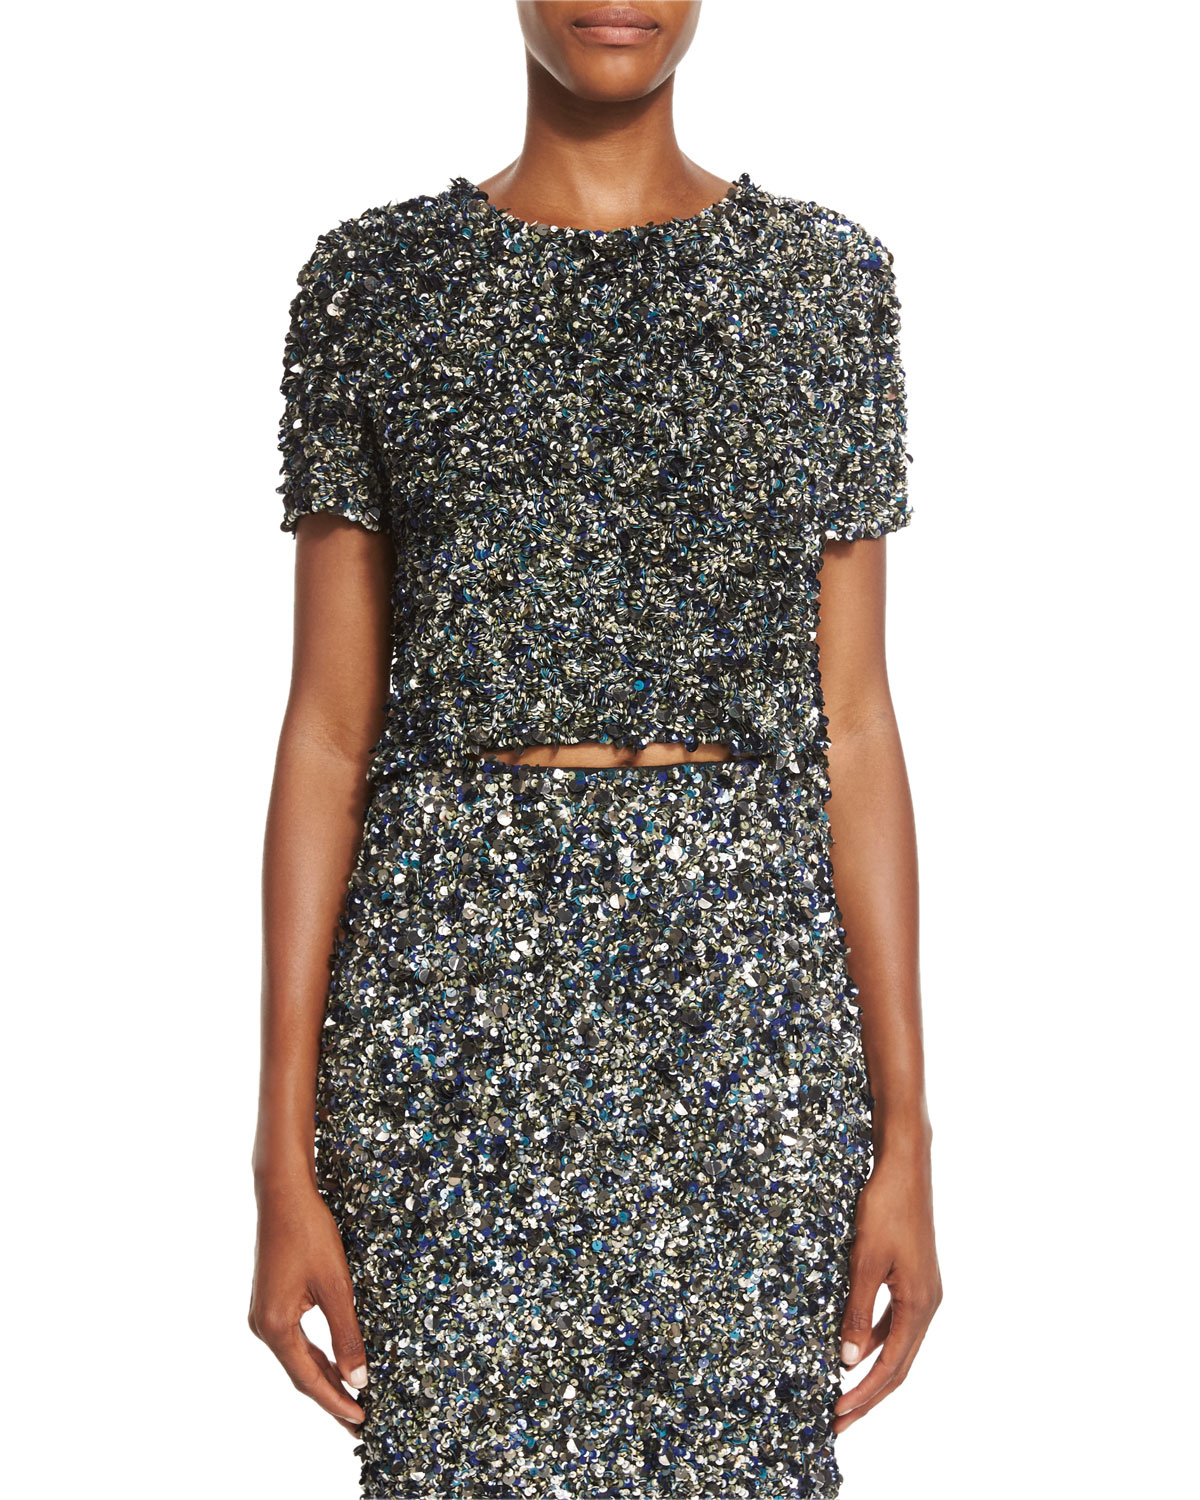 Mosaic Sequin-Embellished Top, Multi